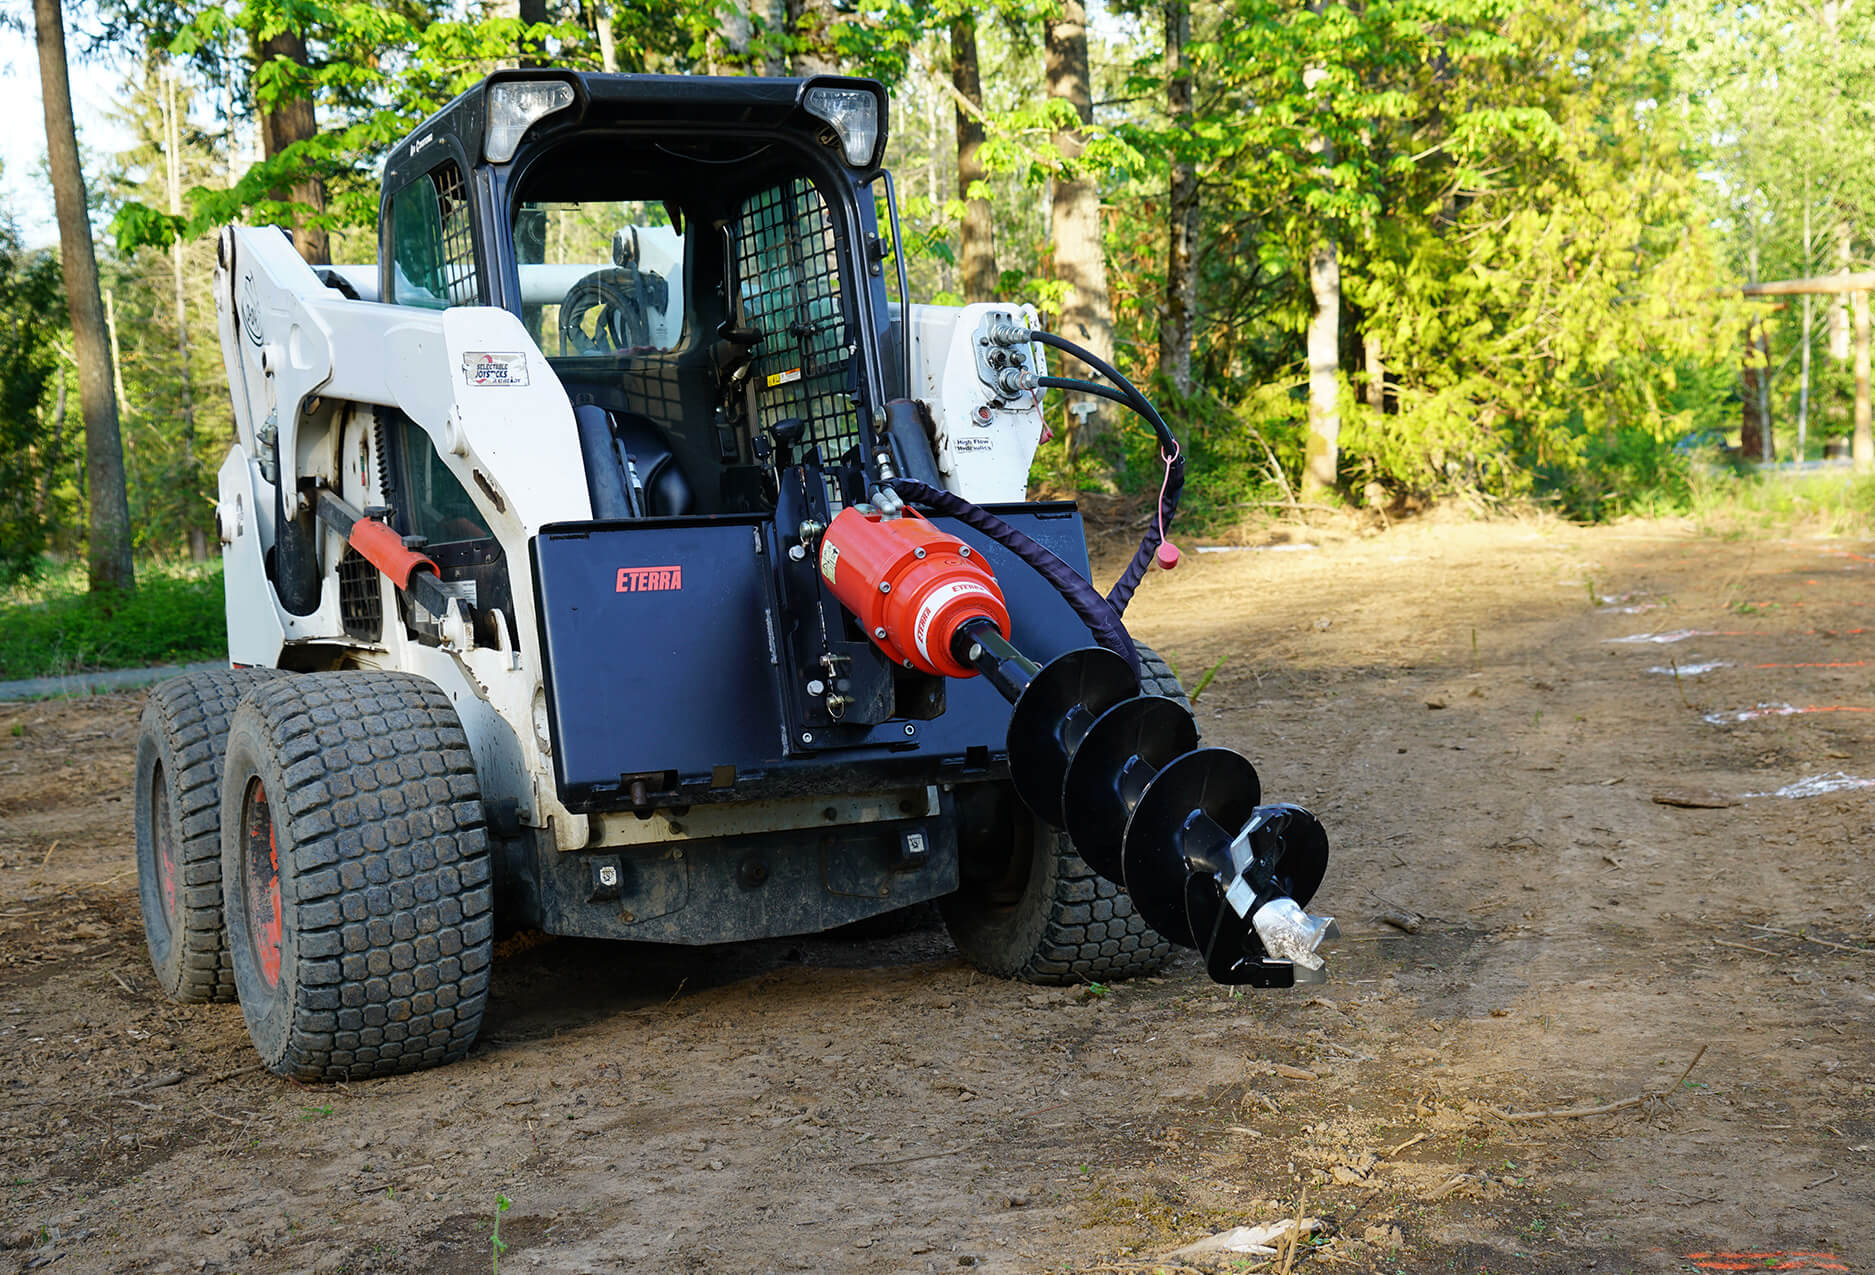 Skid steer auger drive eterra on bobcat